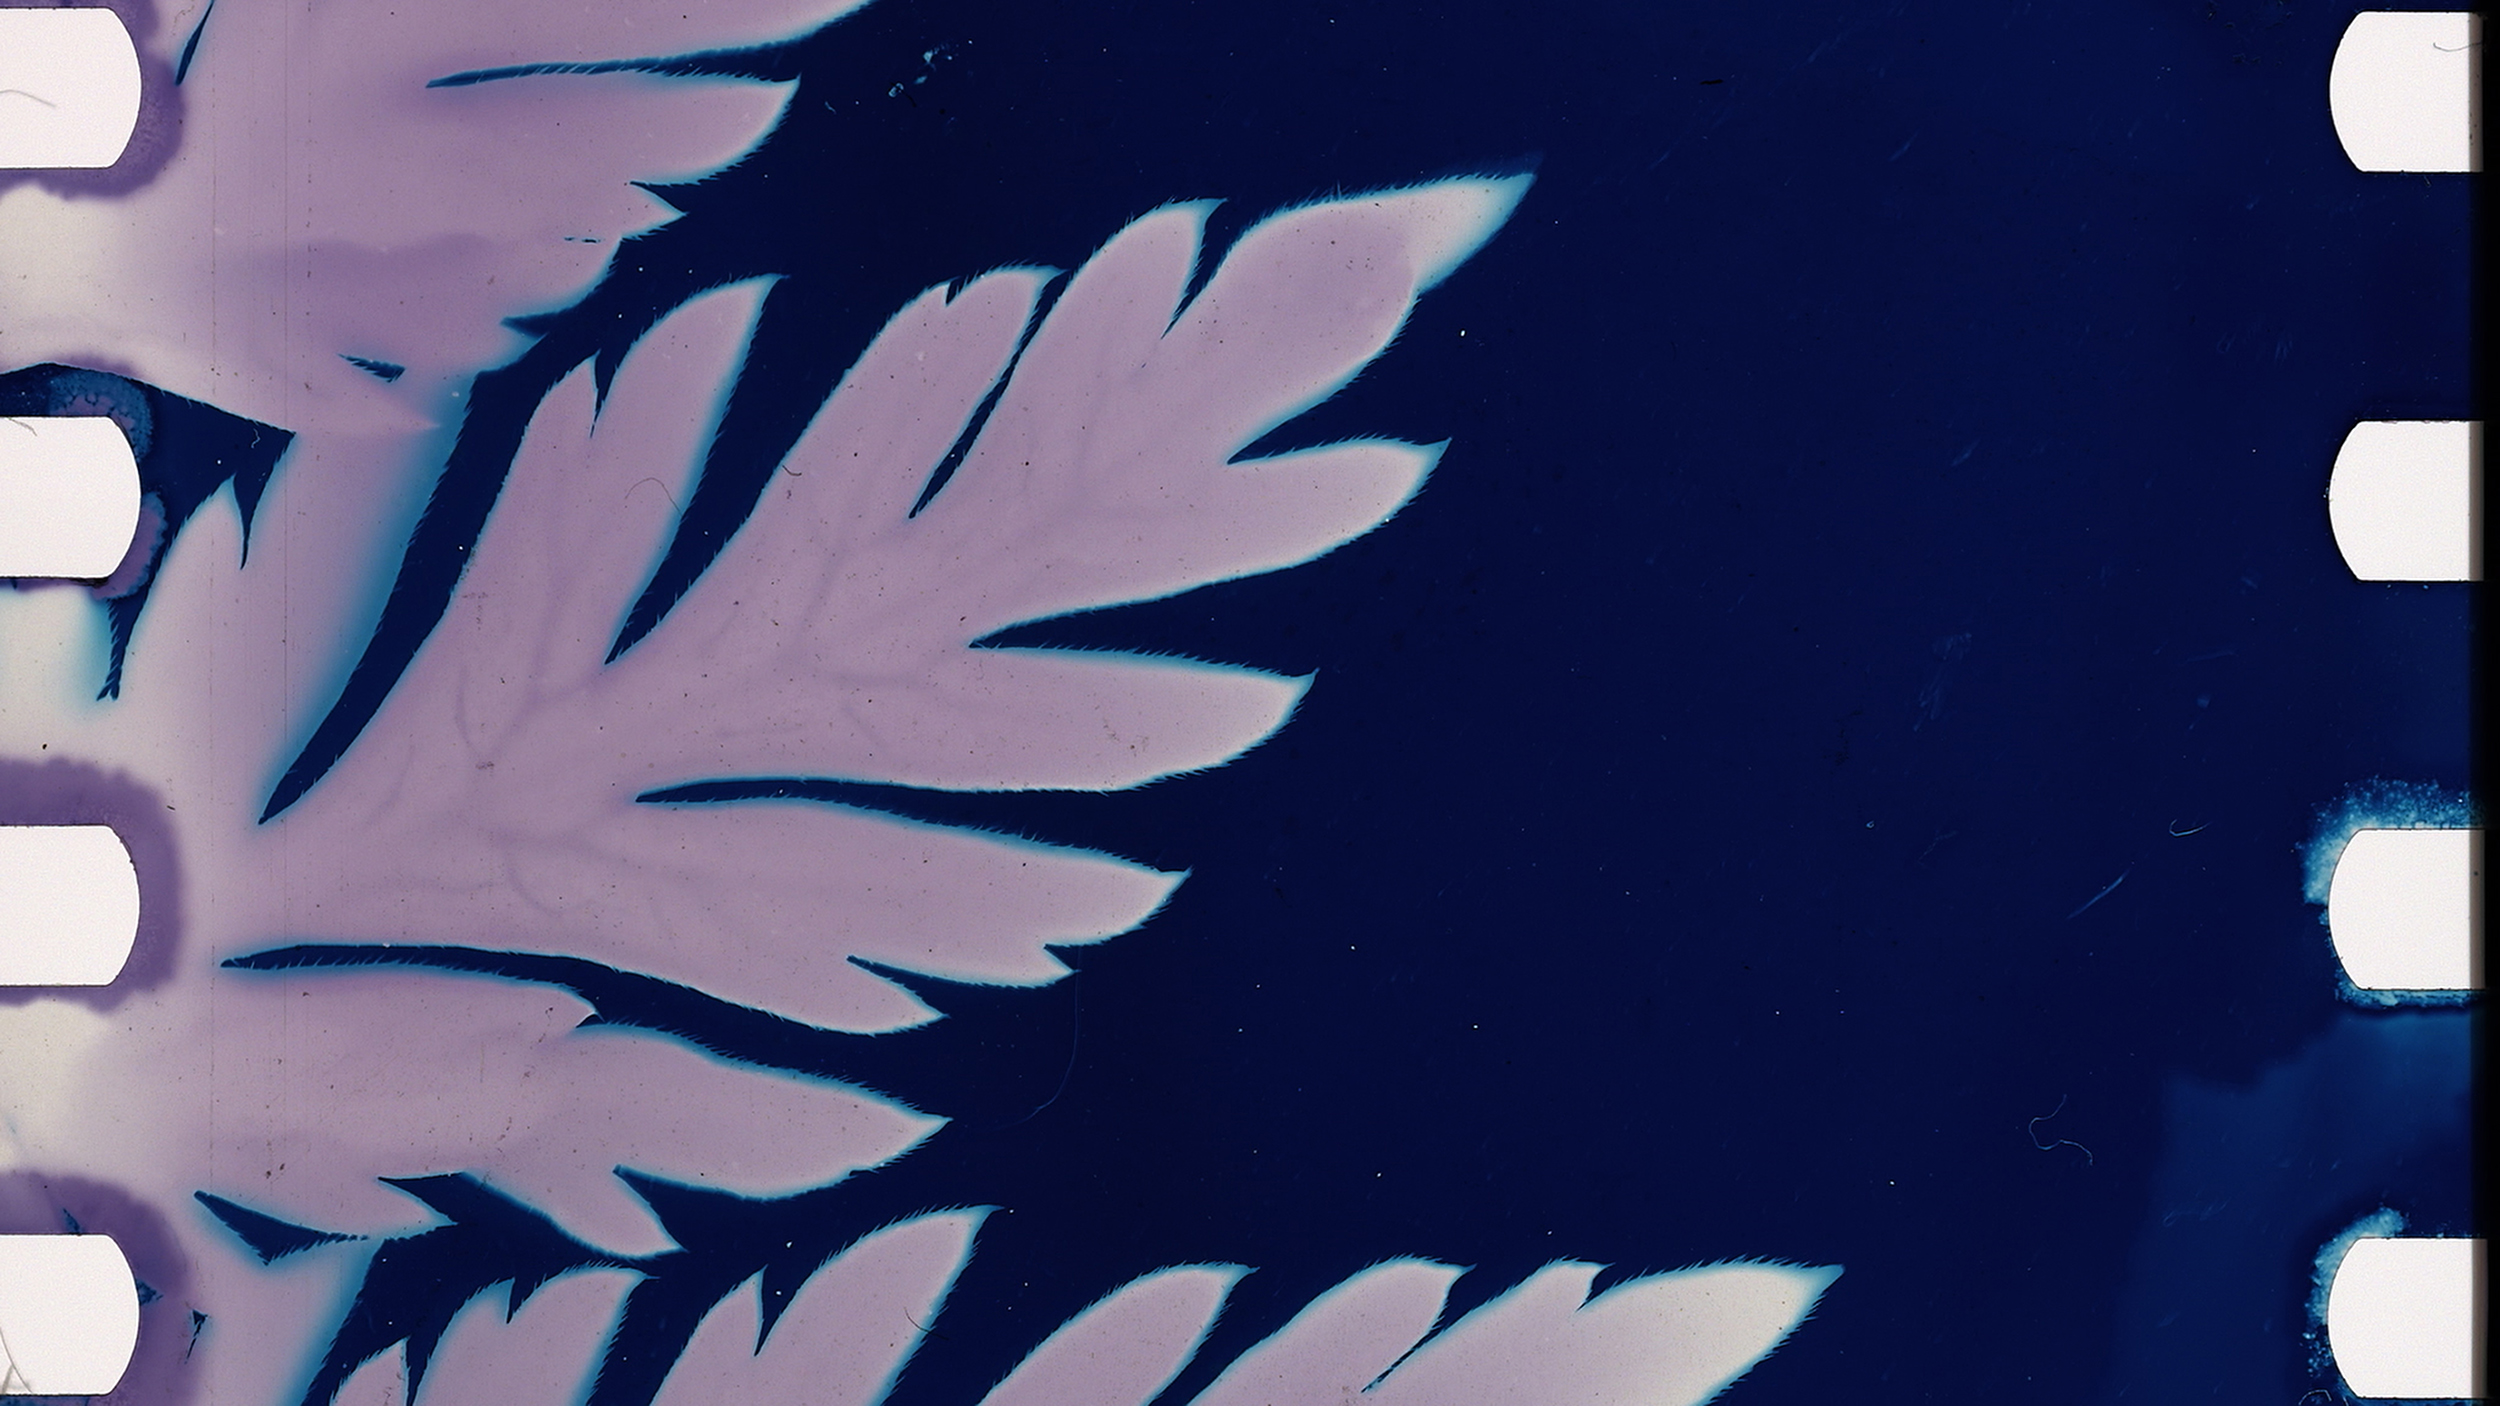 Athyrium filix-femina, Kelly Egan, 2016, color, handmade cyanotype emulsion, 5 minutes